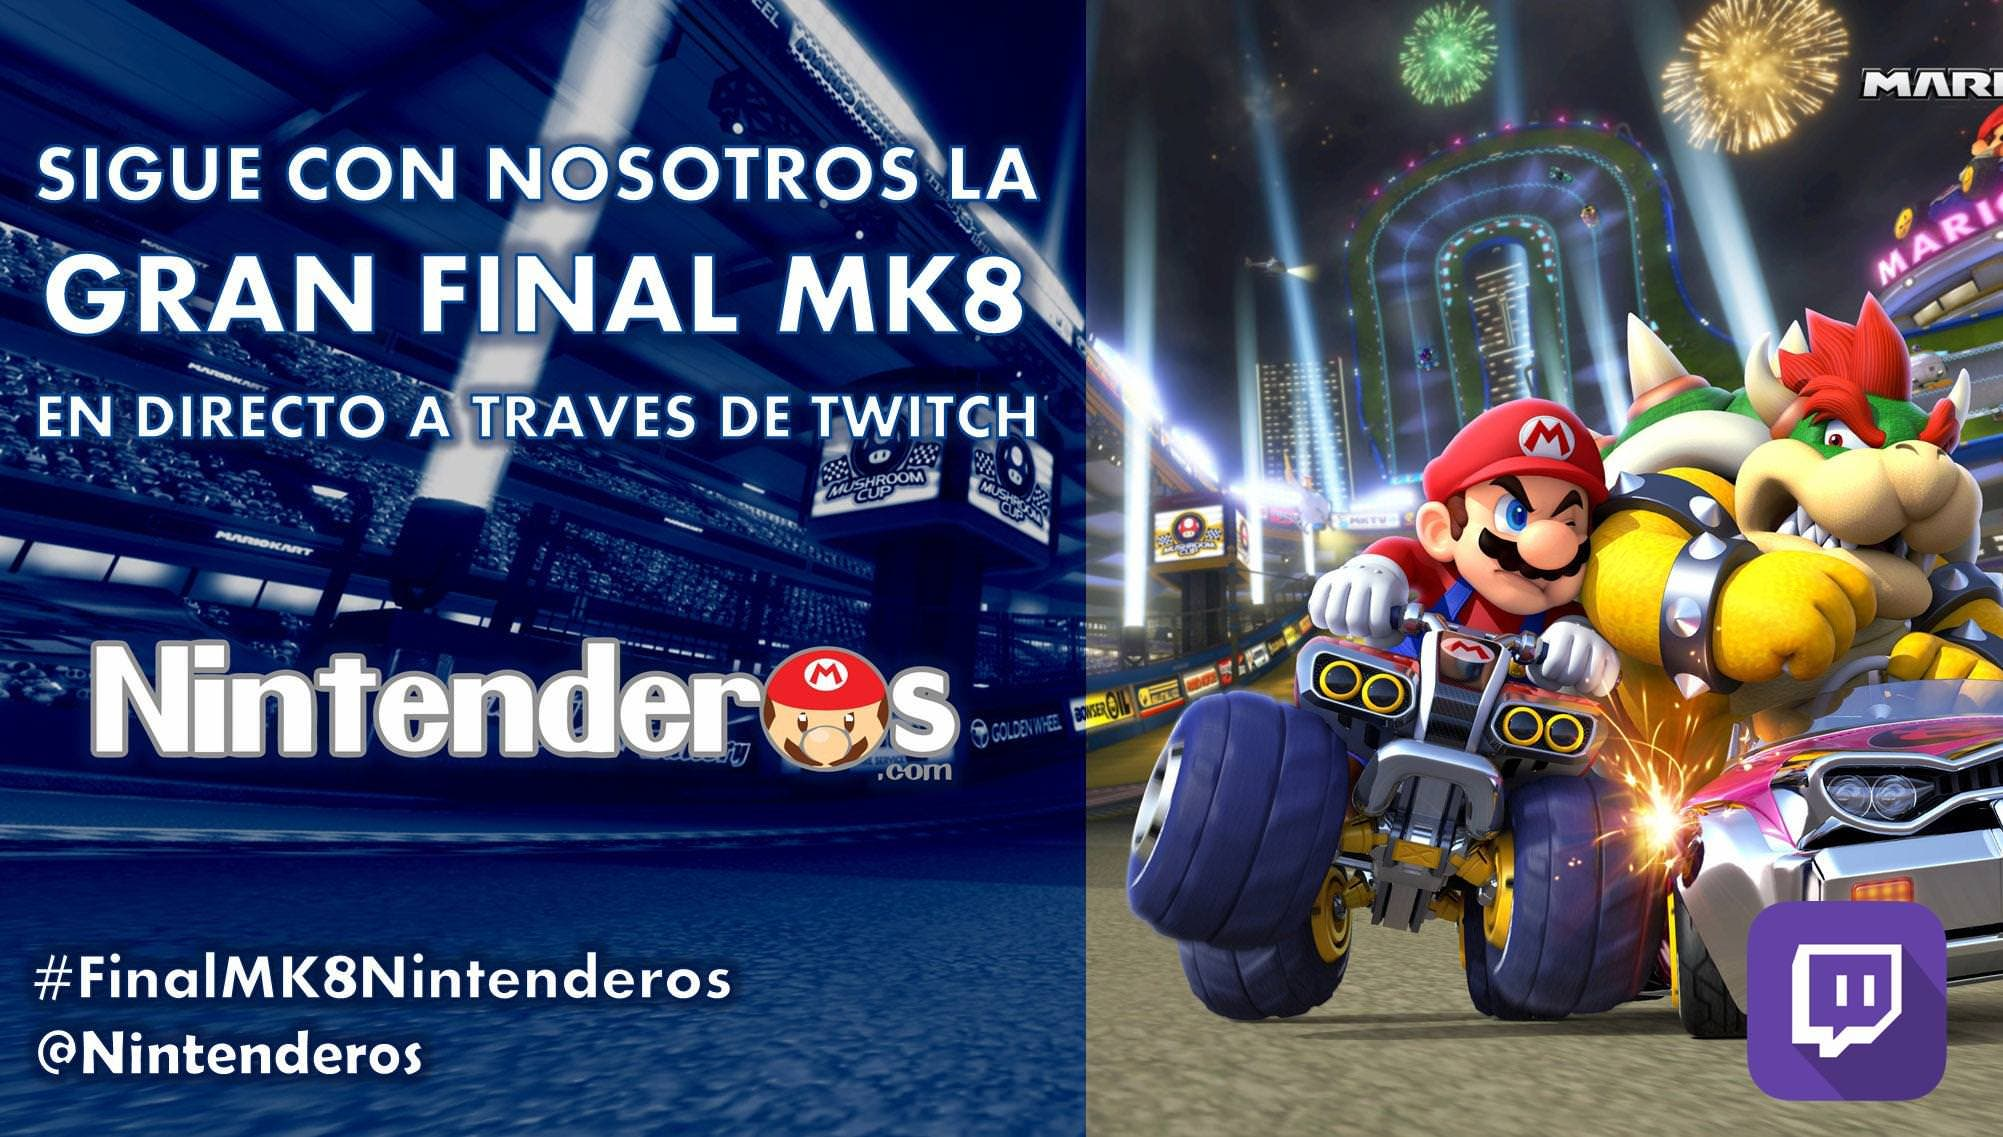 Resultados de la semifinal del Torneo Mario Kart 8. ¡No te pierdas mañana la gran final!